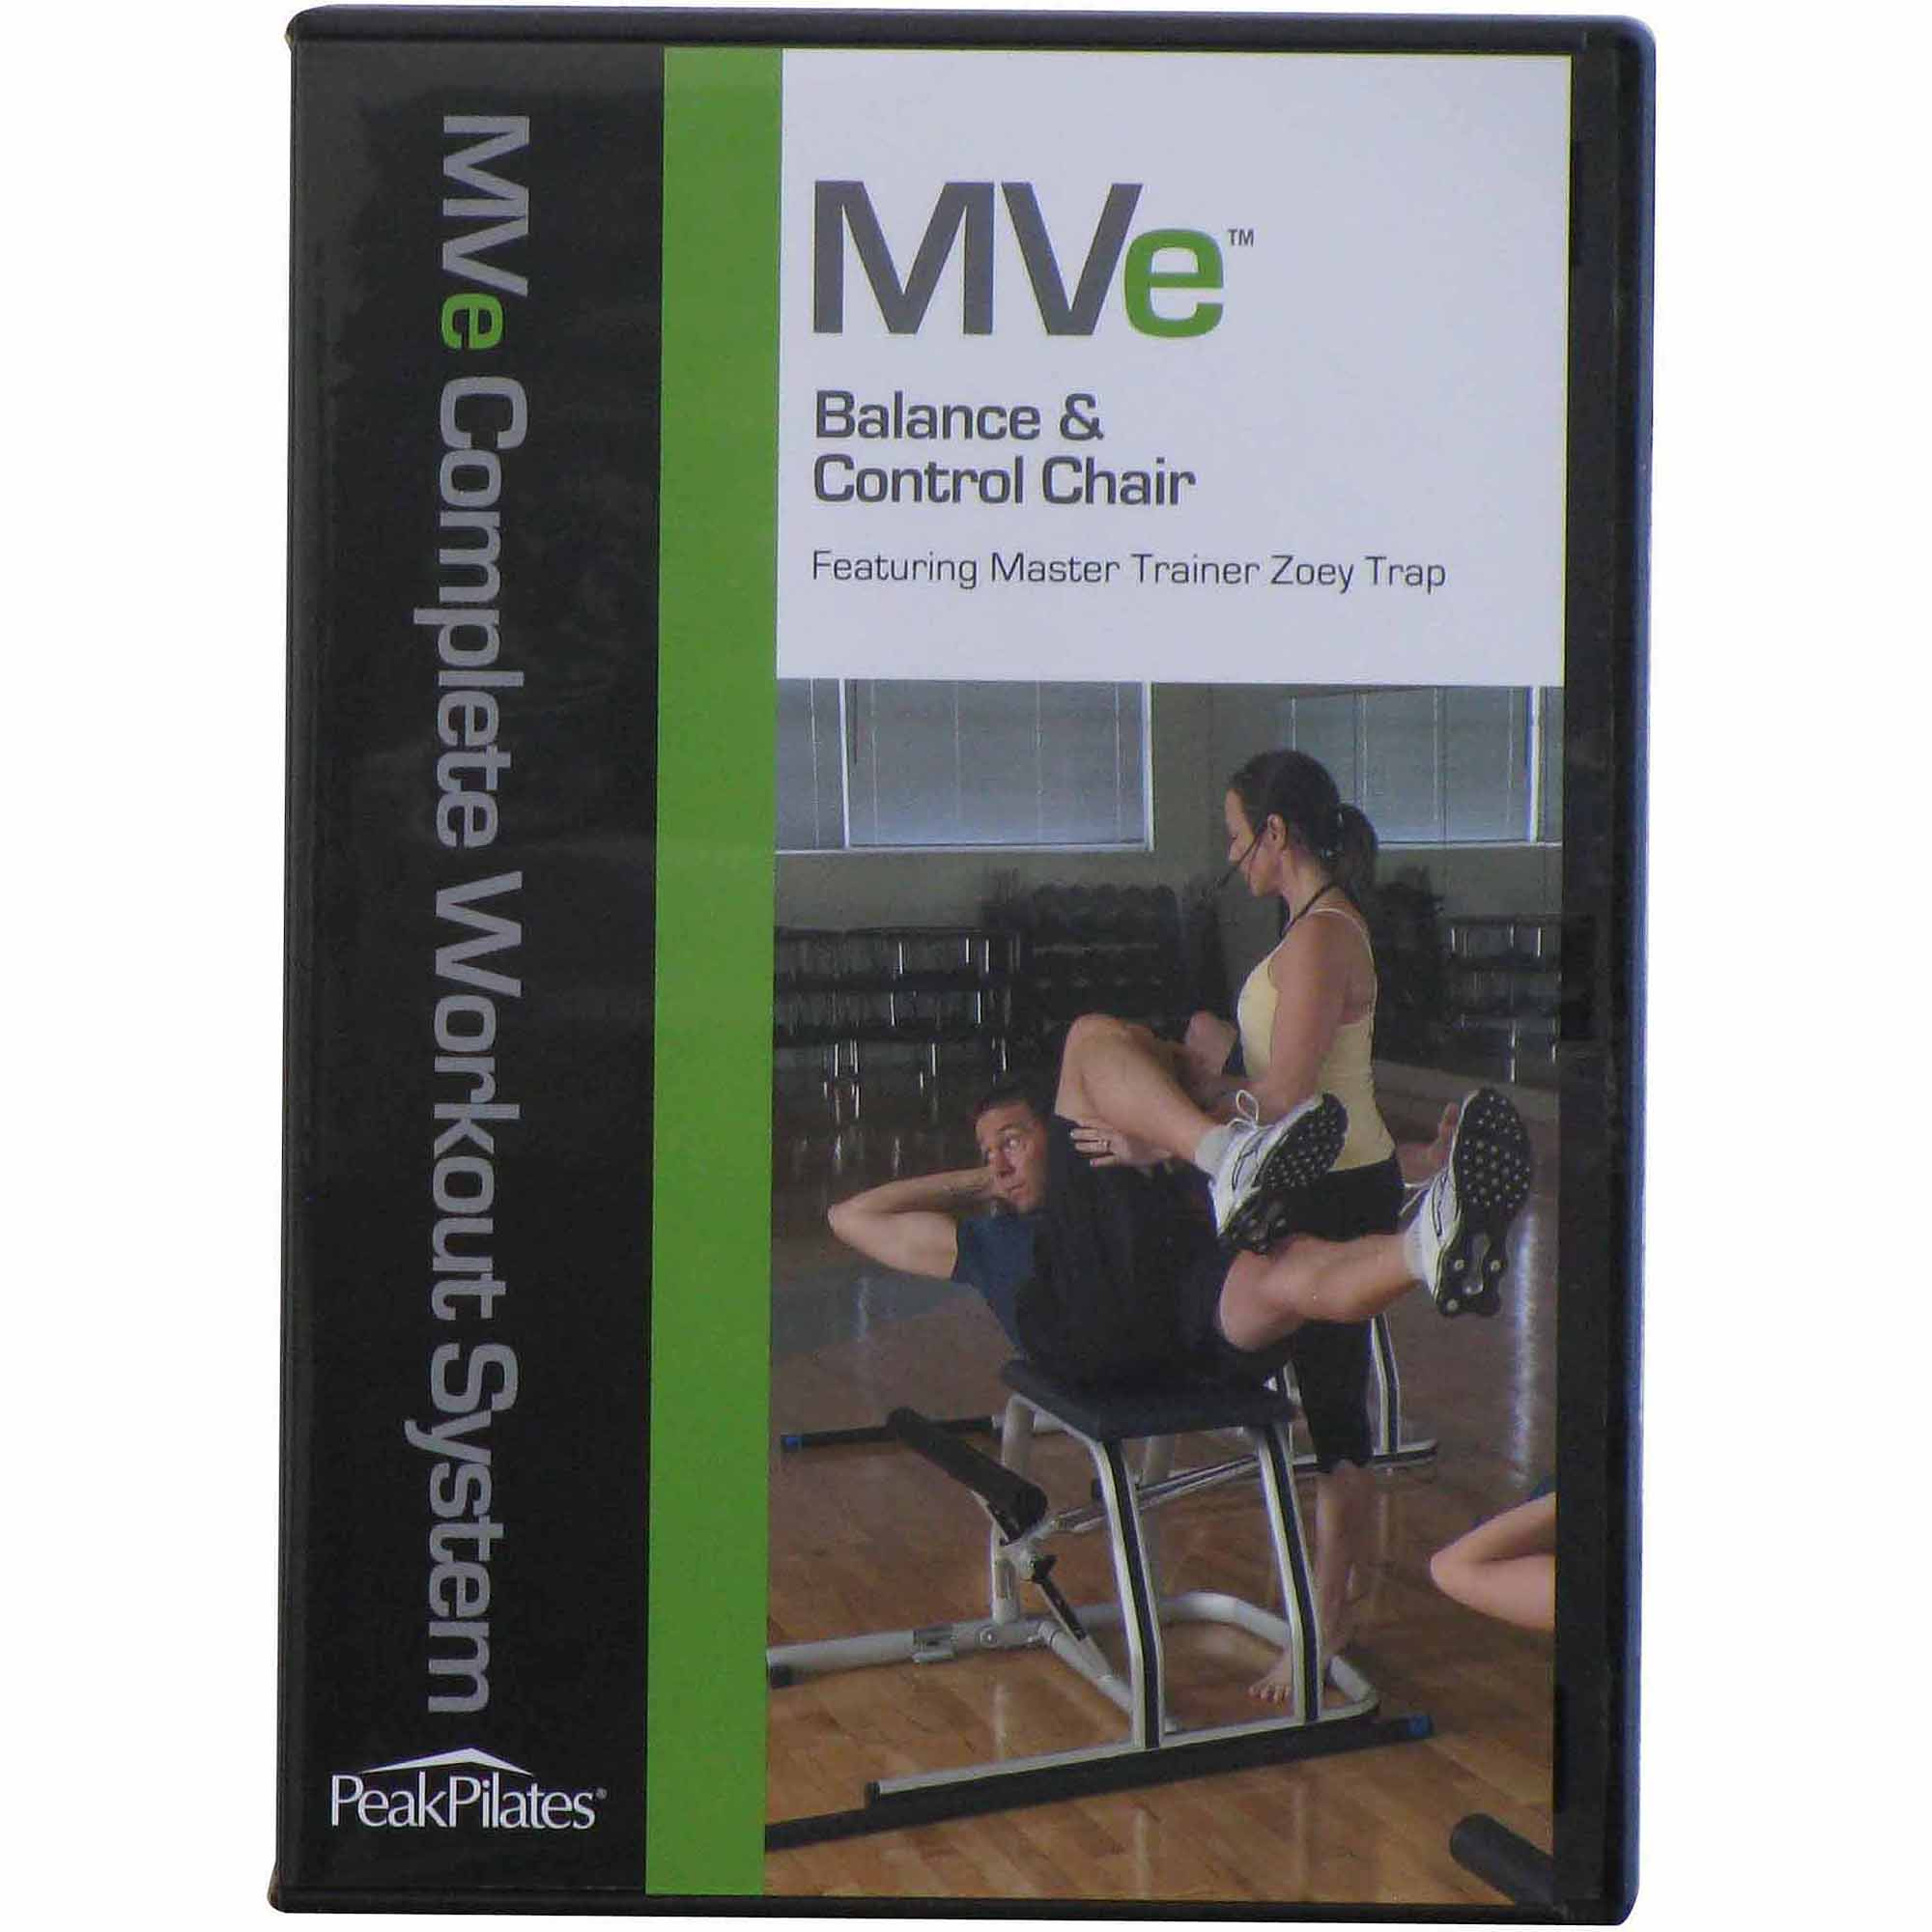 Peak Pilates MVe Balance and Control Chair Workout DVD